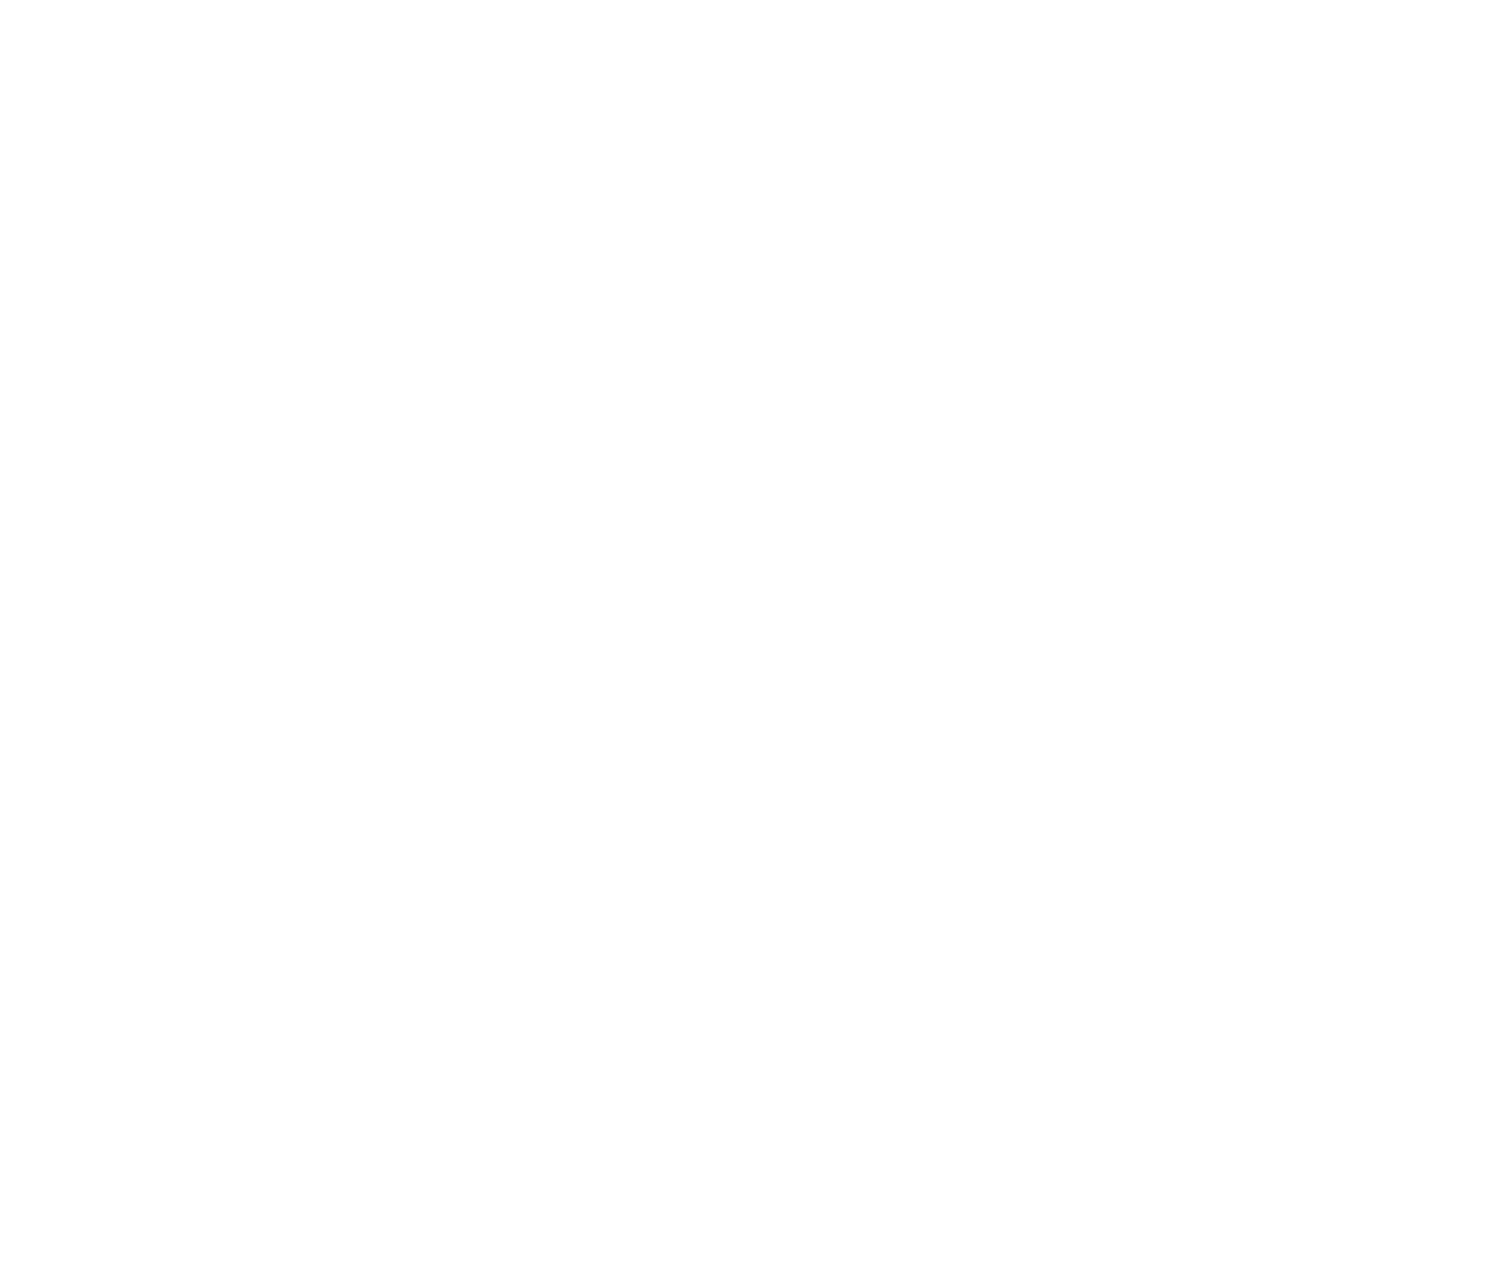 LB Dance.co.uk